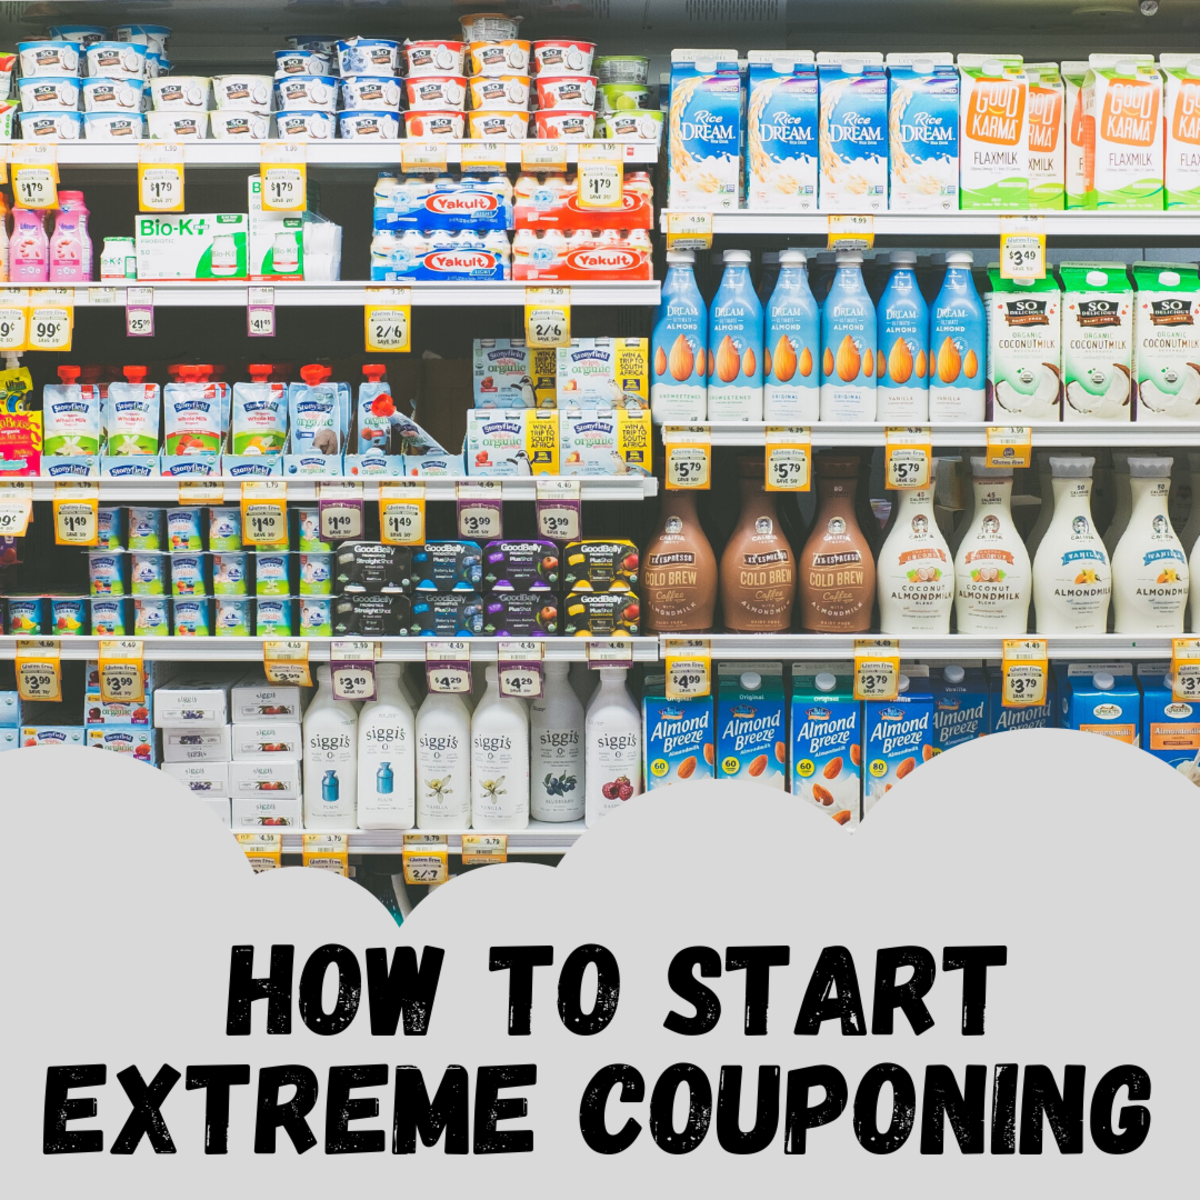 Learn how couponing can help you live a more frugal life.